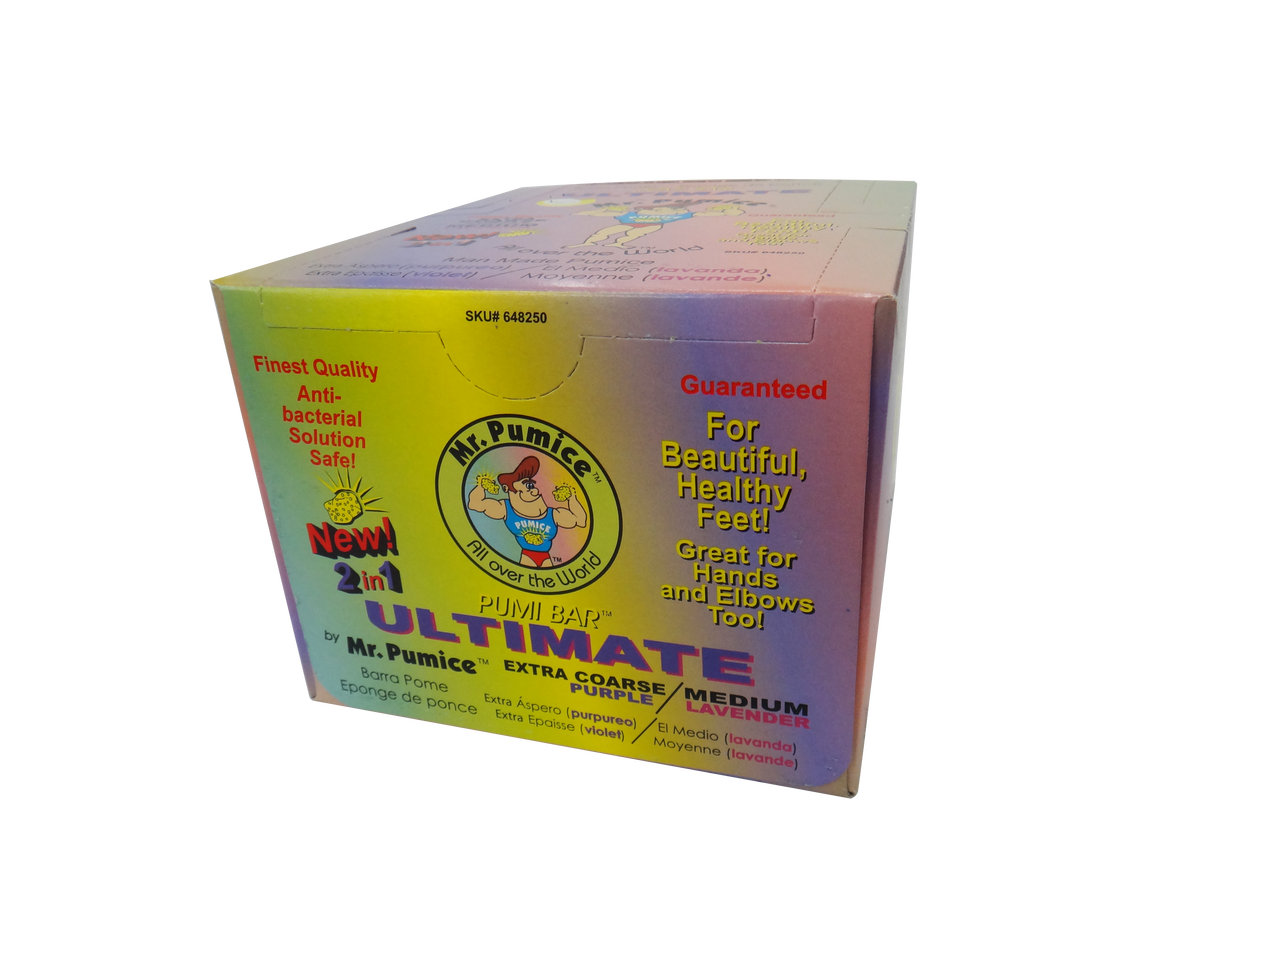 Mr. Pumice Ultimate 2 in 1 Pumi Bar (12 per Pack